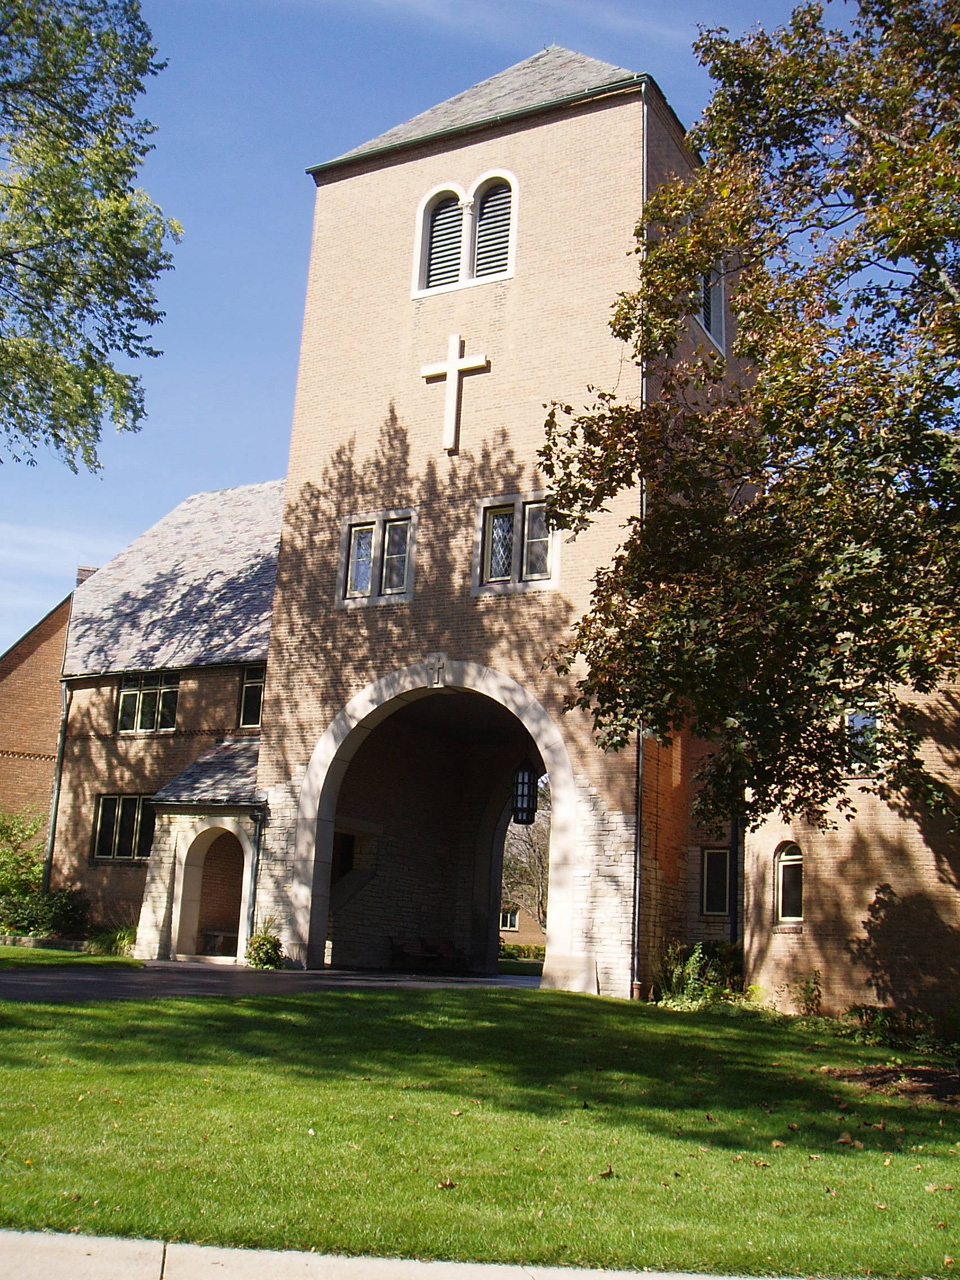 Founded in 1863, the Wisconsin Lutheran Seminary has been located in Mequon since 1929. Its campus entrance is pictured here in 2007.